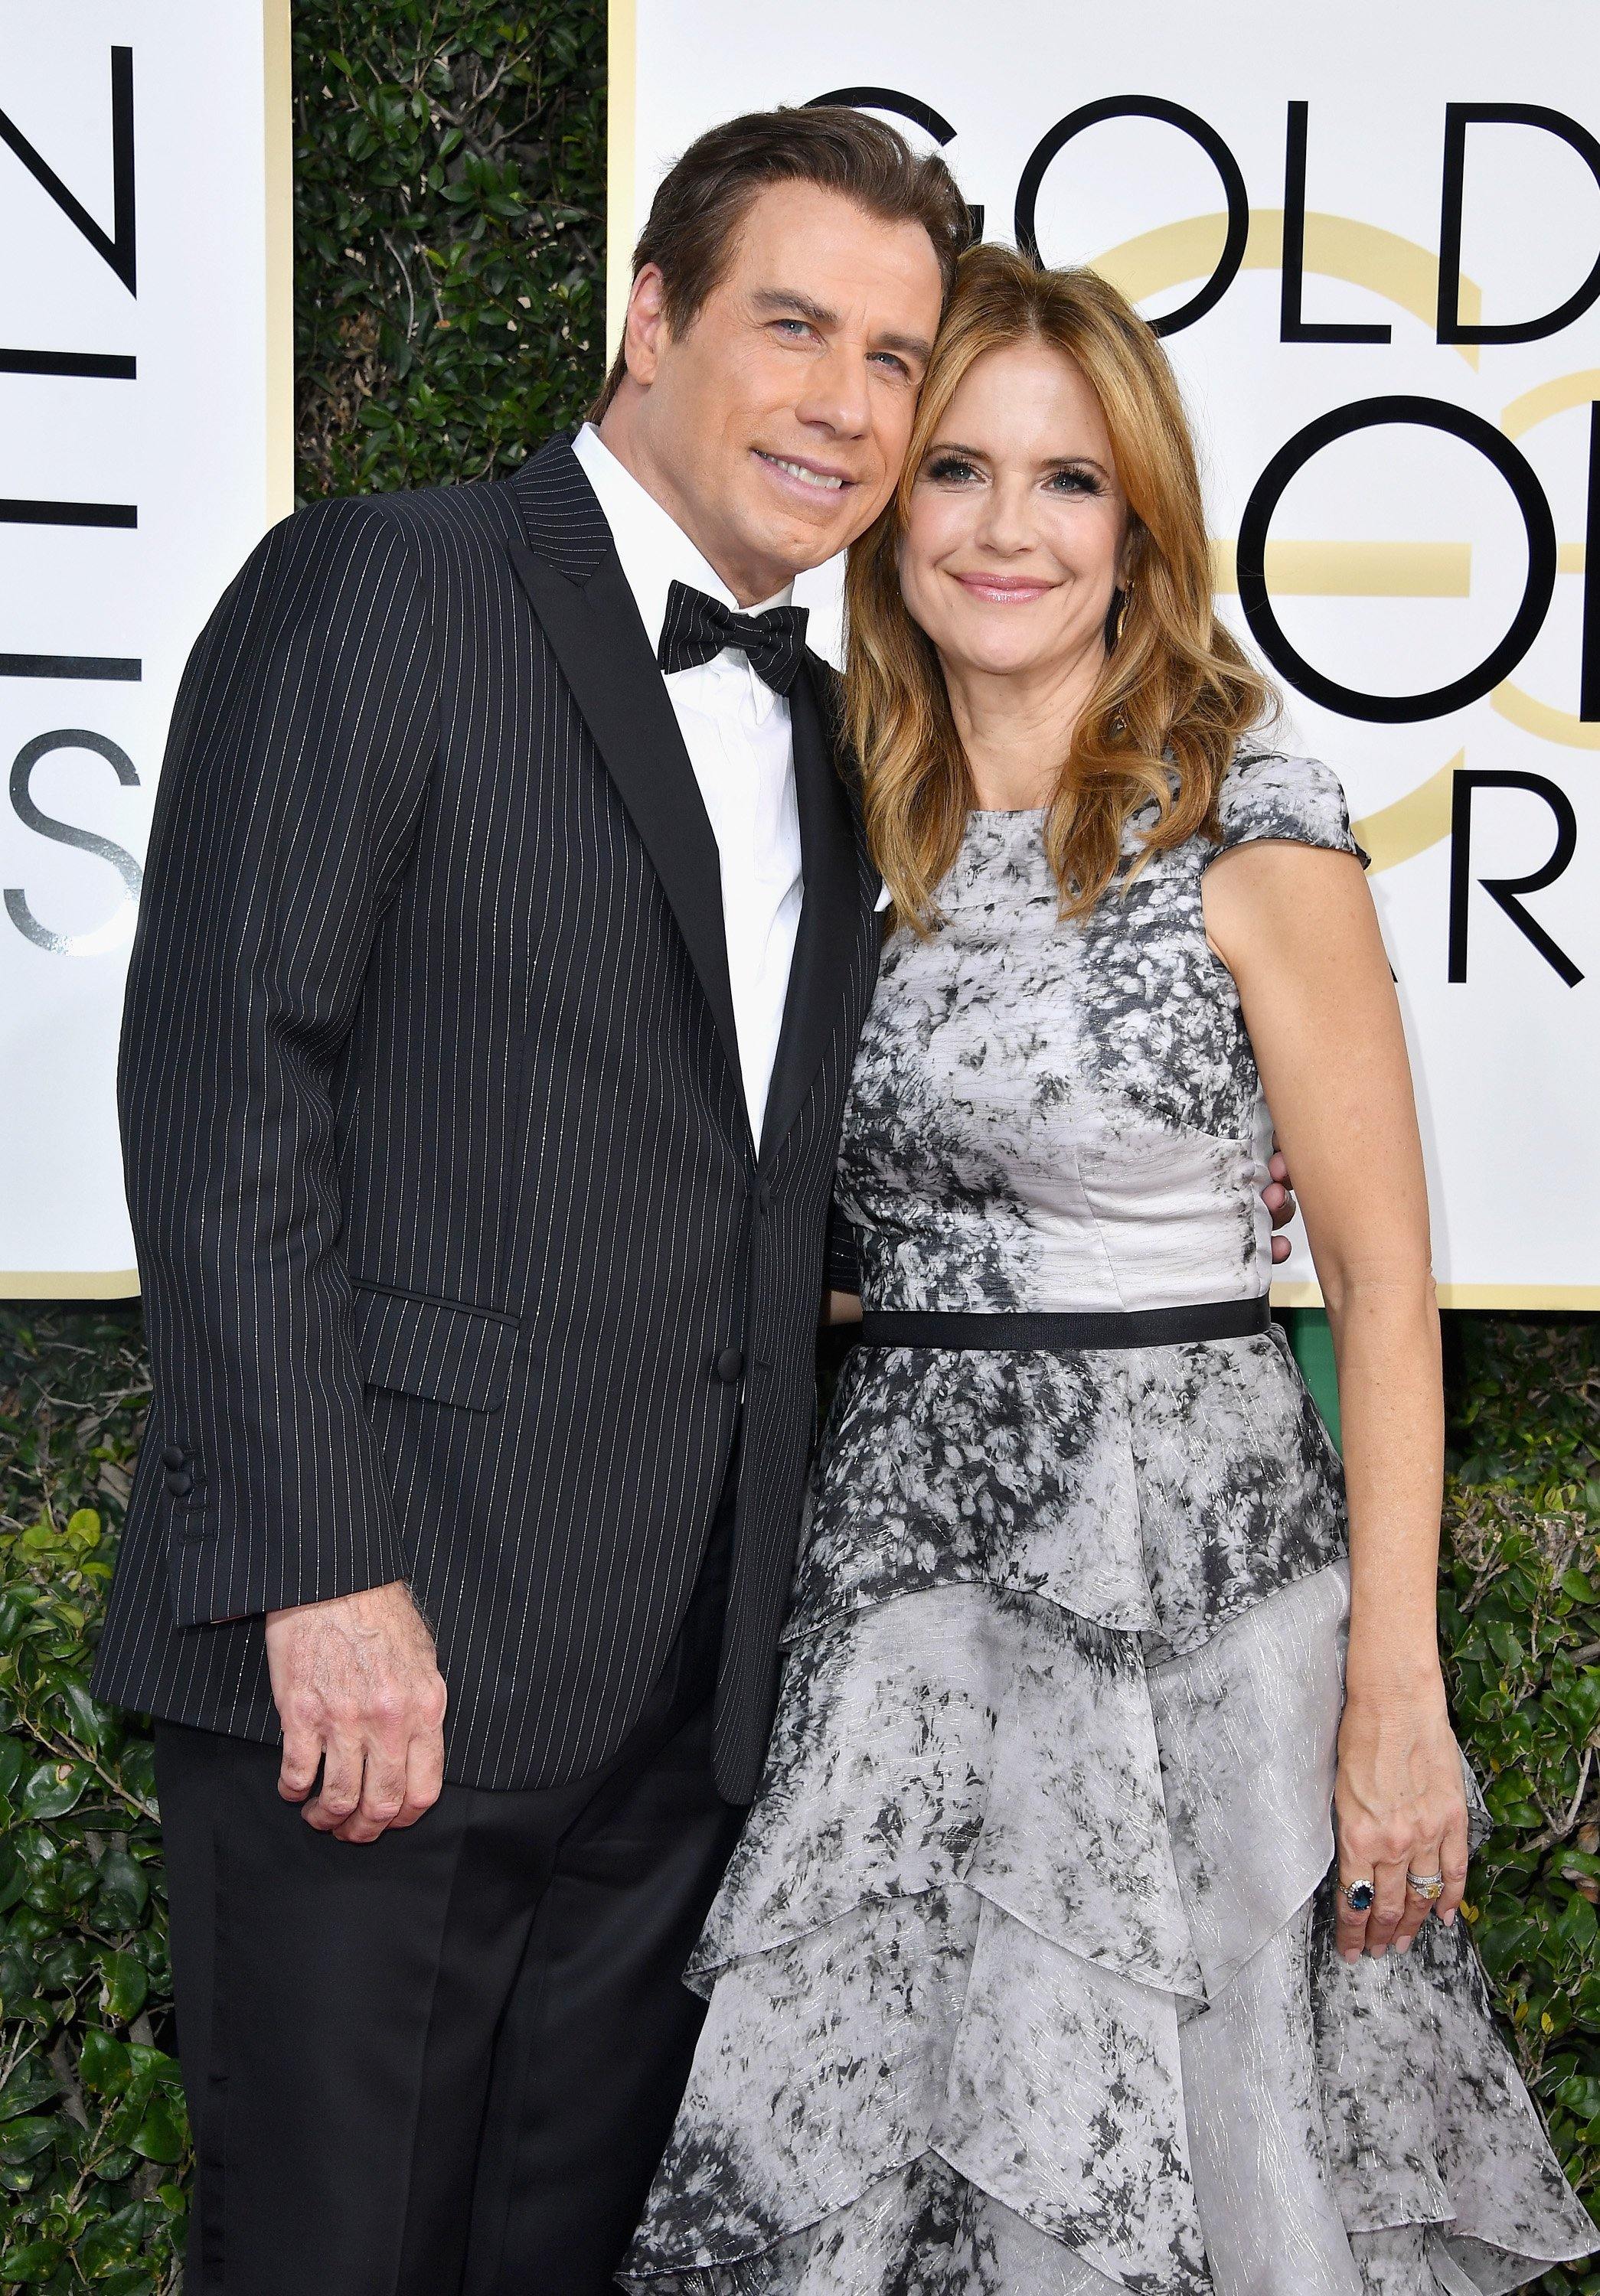 John Travolta and actress Kelly Preston attend the 74th Annual Golden Globe Awards on January 8, 2017, in Beverly Hills, California. | Source: Getty Images.